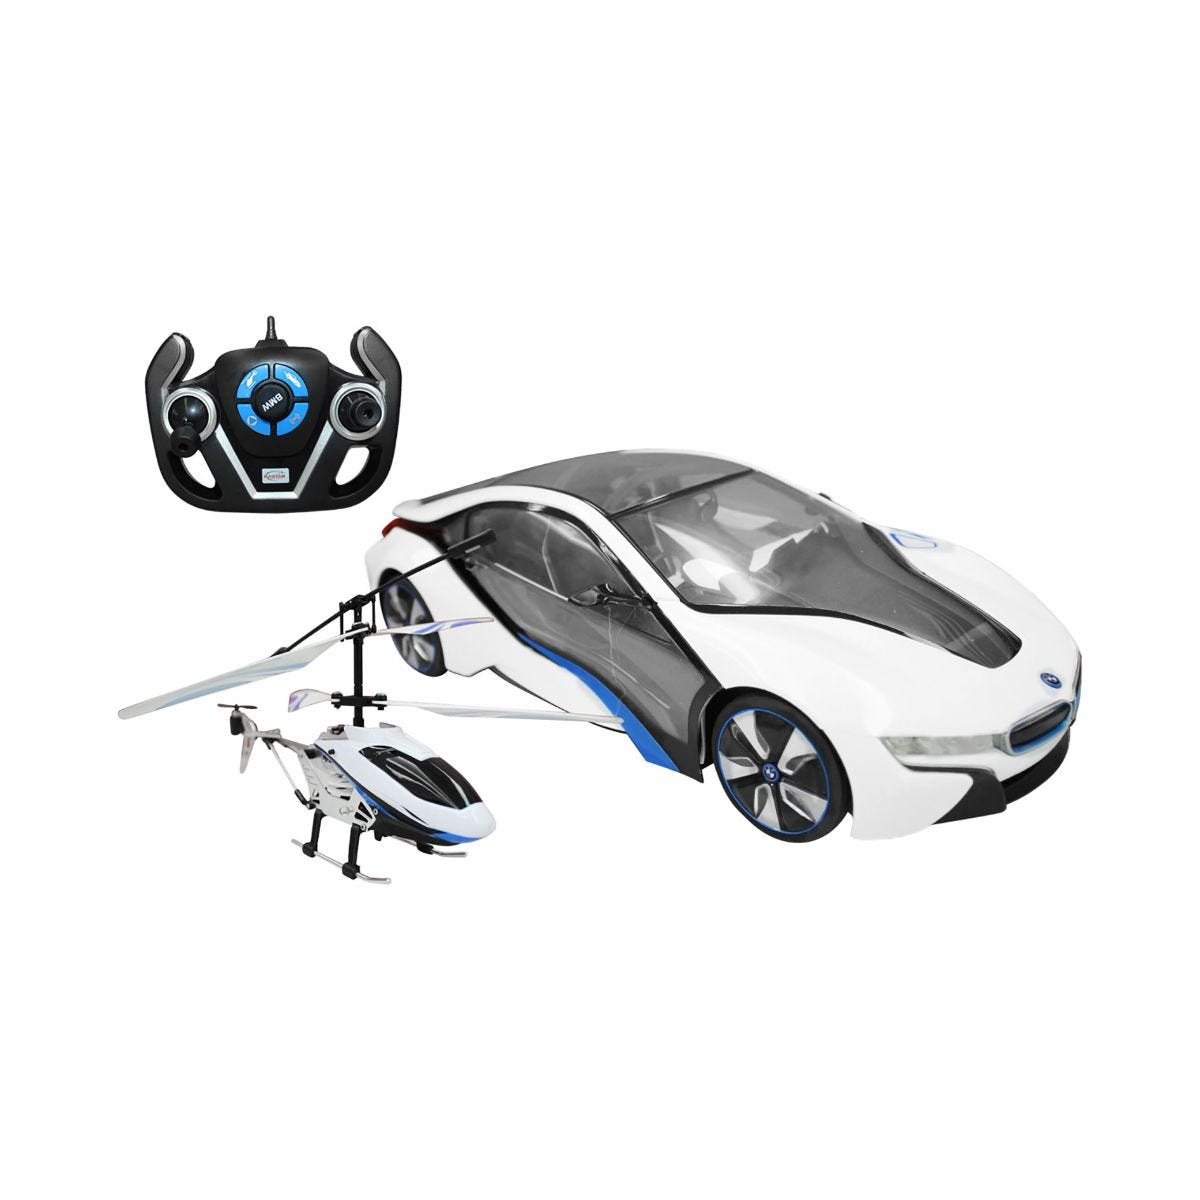 Charles Bentley BMW i8 1 14 Scale Car and Helicopter Remote Control Toy Set